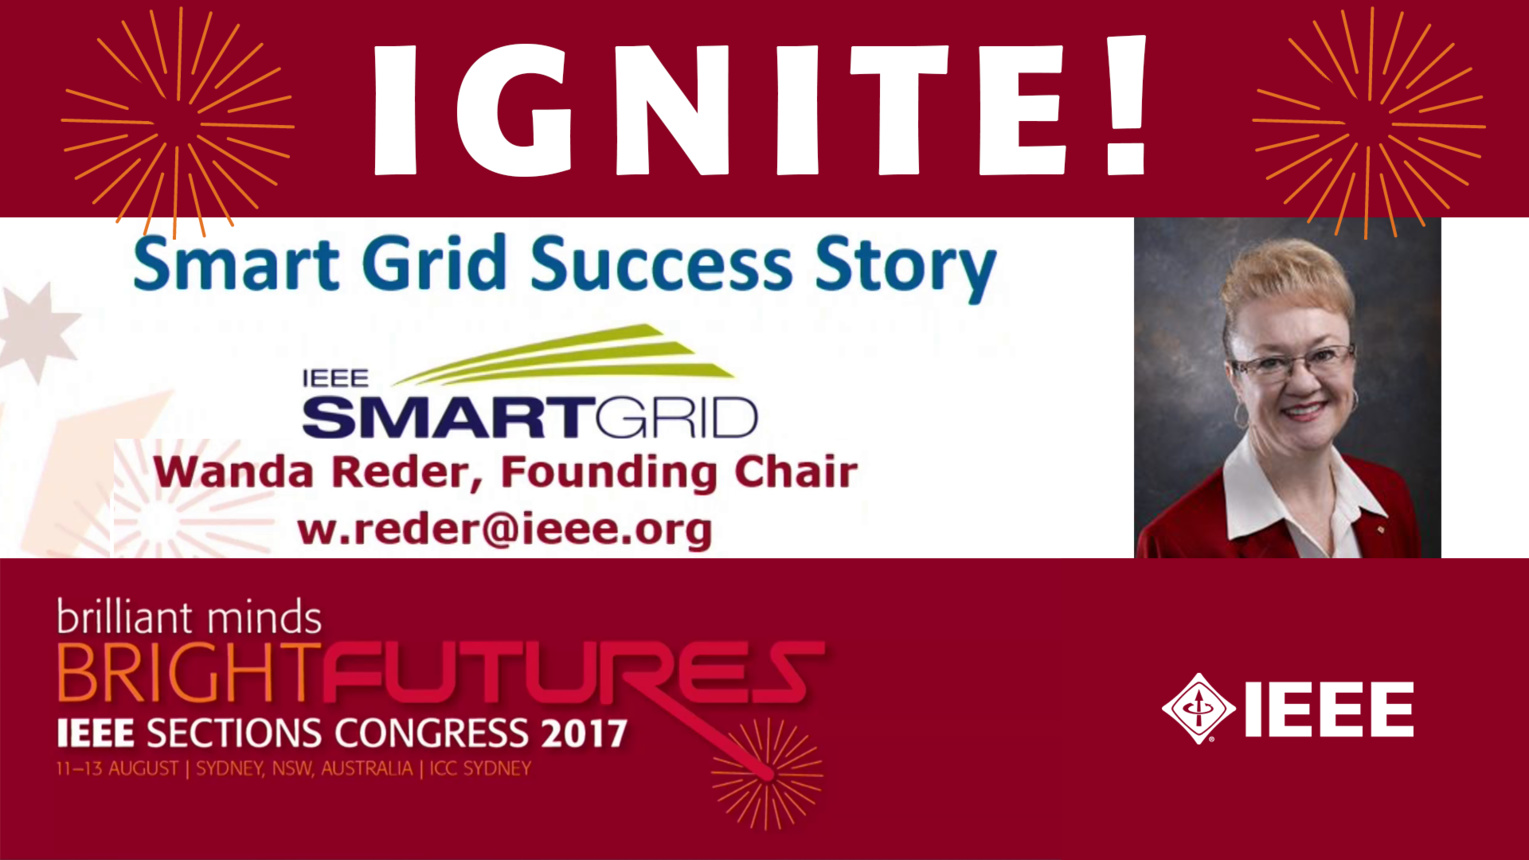 Smart Grid Success Story - Wanda Reder - Ignite: Sections Congress 2017